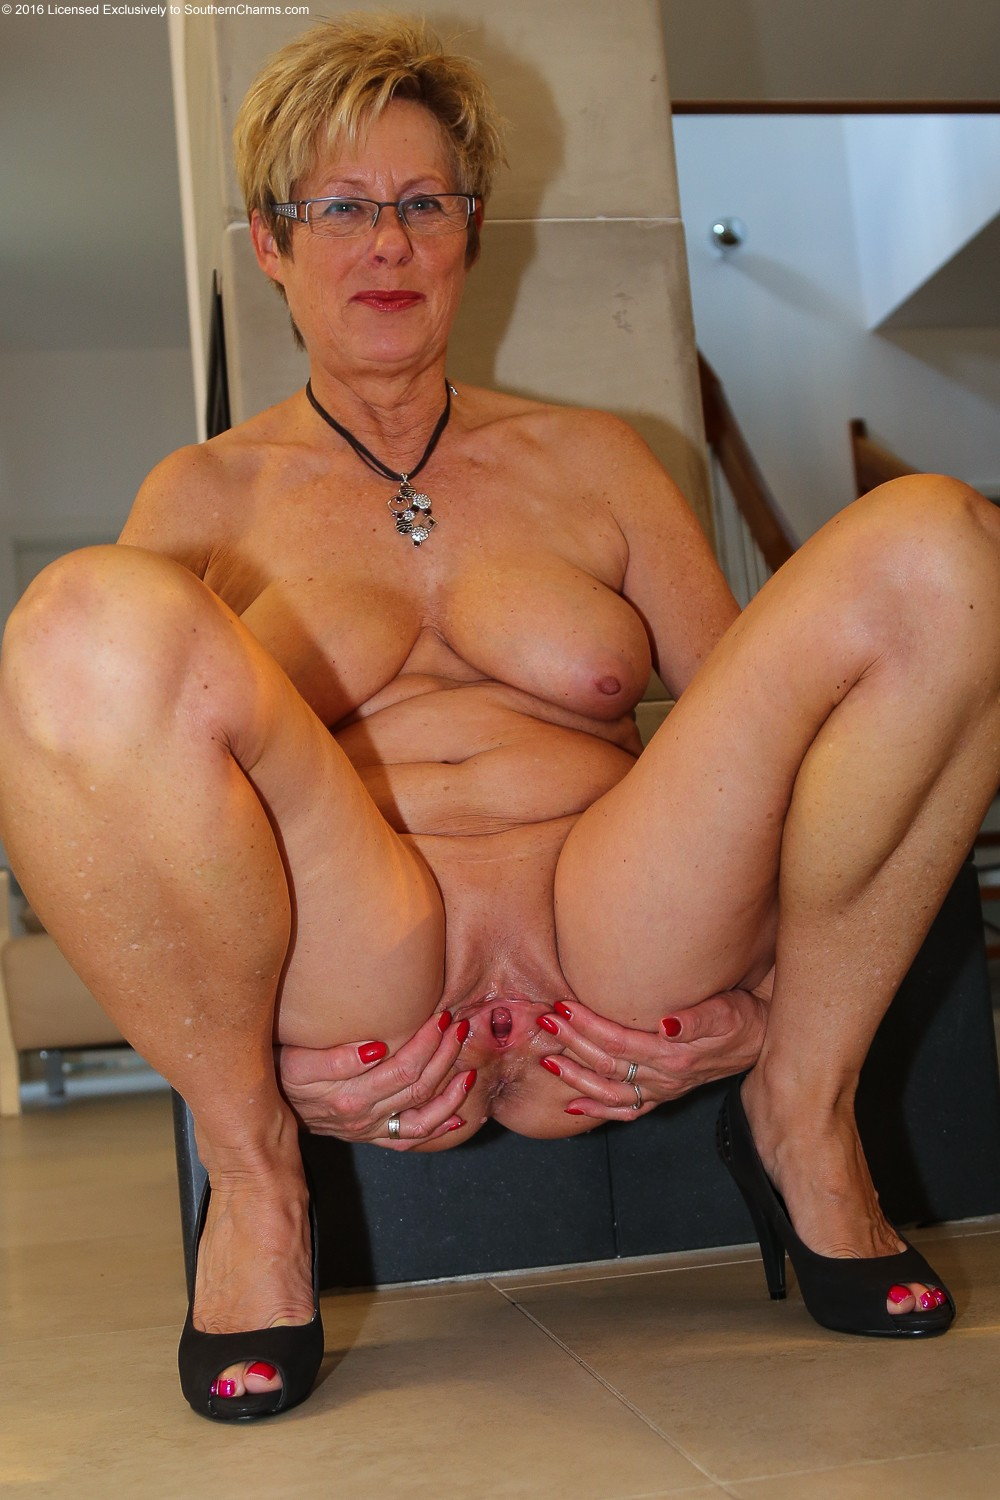 Nude pictures of daphne from southern charms-8801